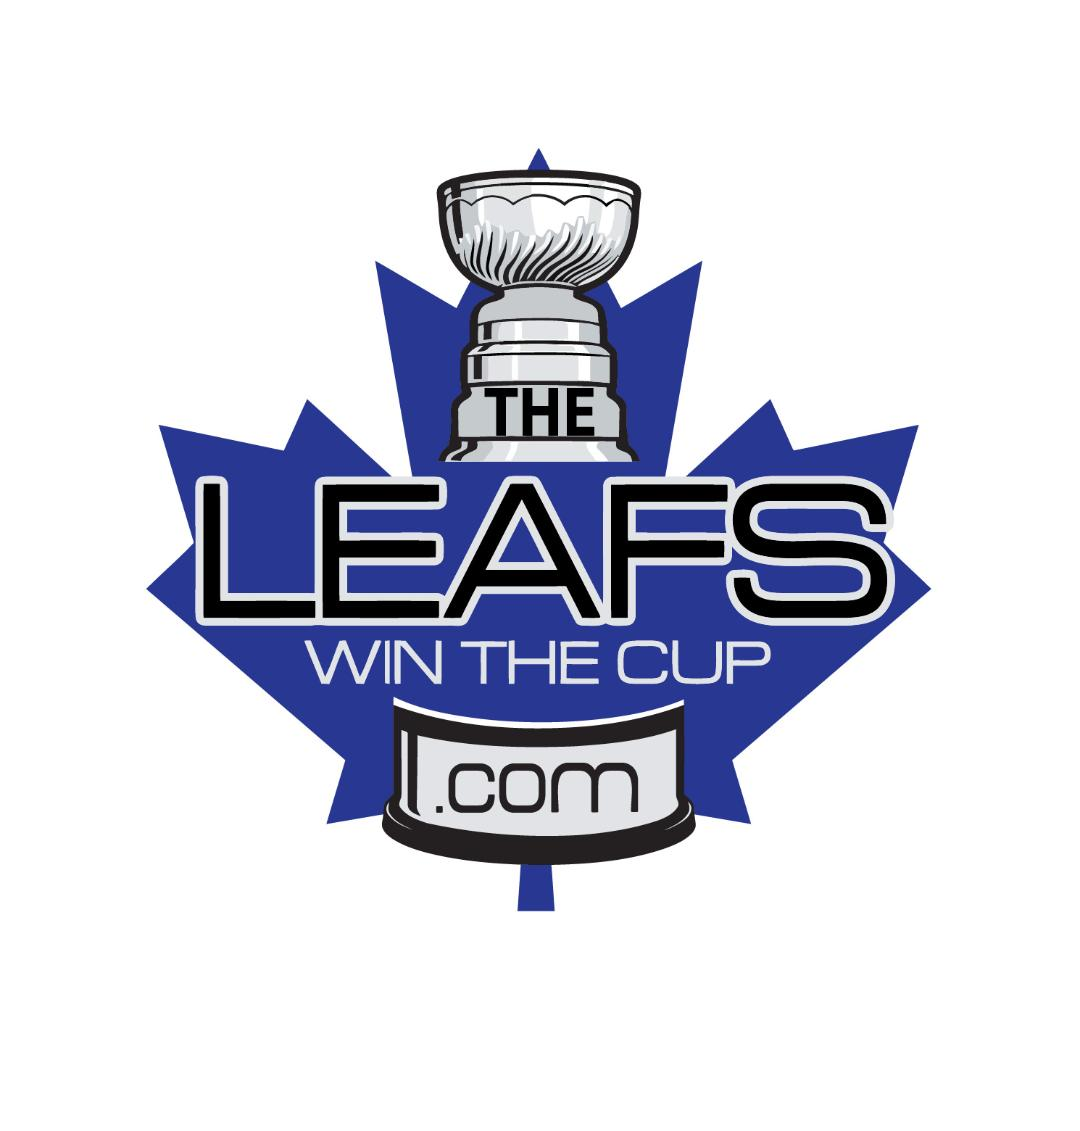 The Leafs Win the Cup!